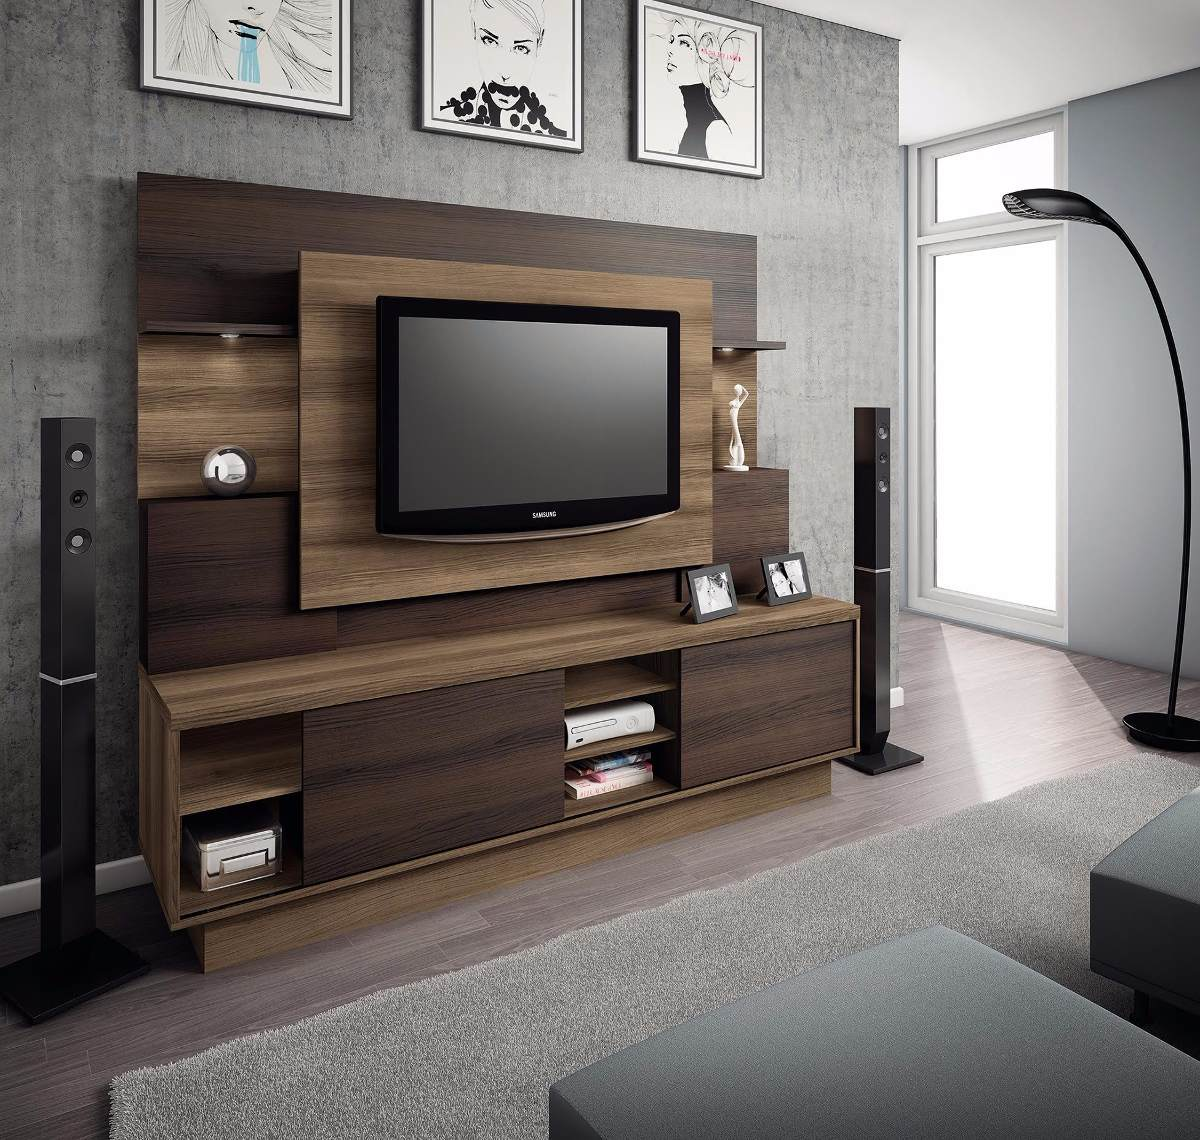 mueble rack home roma tv 42 a 55 ikean en mercado libre. Black Bedroom Furniture Sets. Home Design Ideas